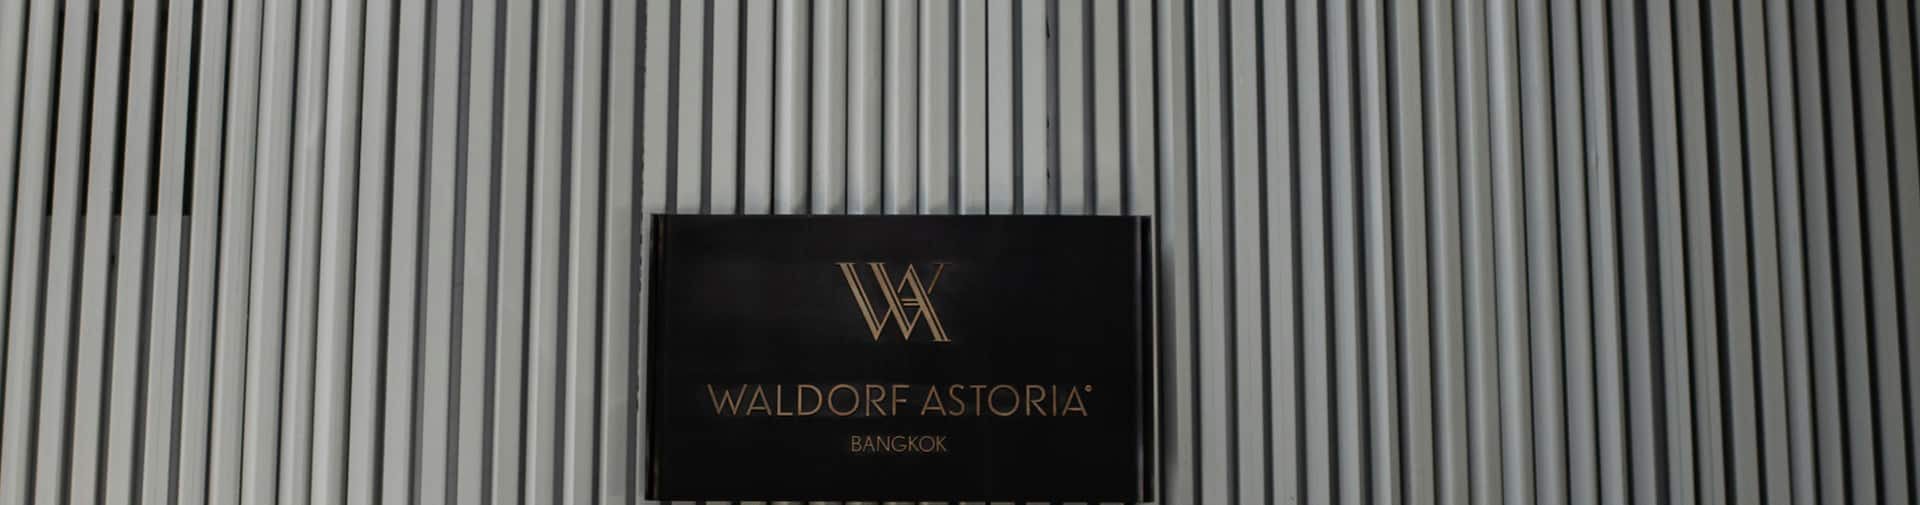 Side View of Aston Martin Parked in Front of Waldorf Astoria Bangkok